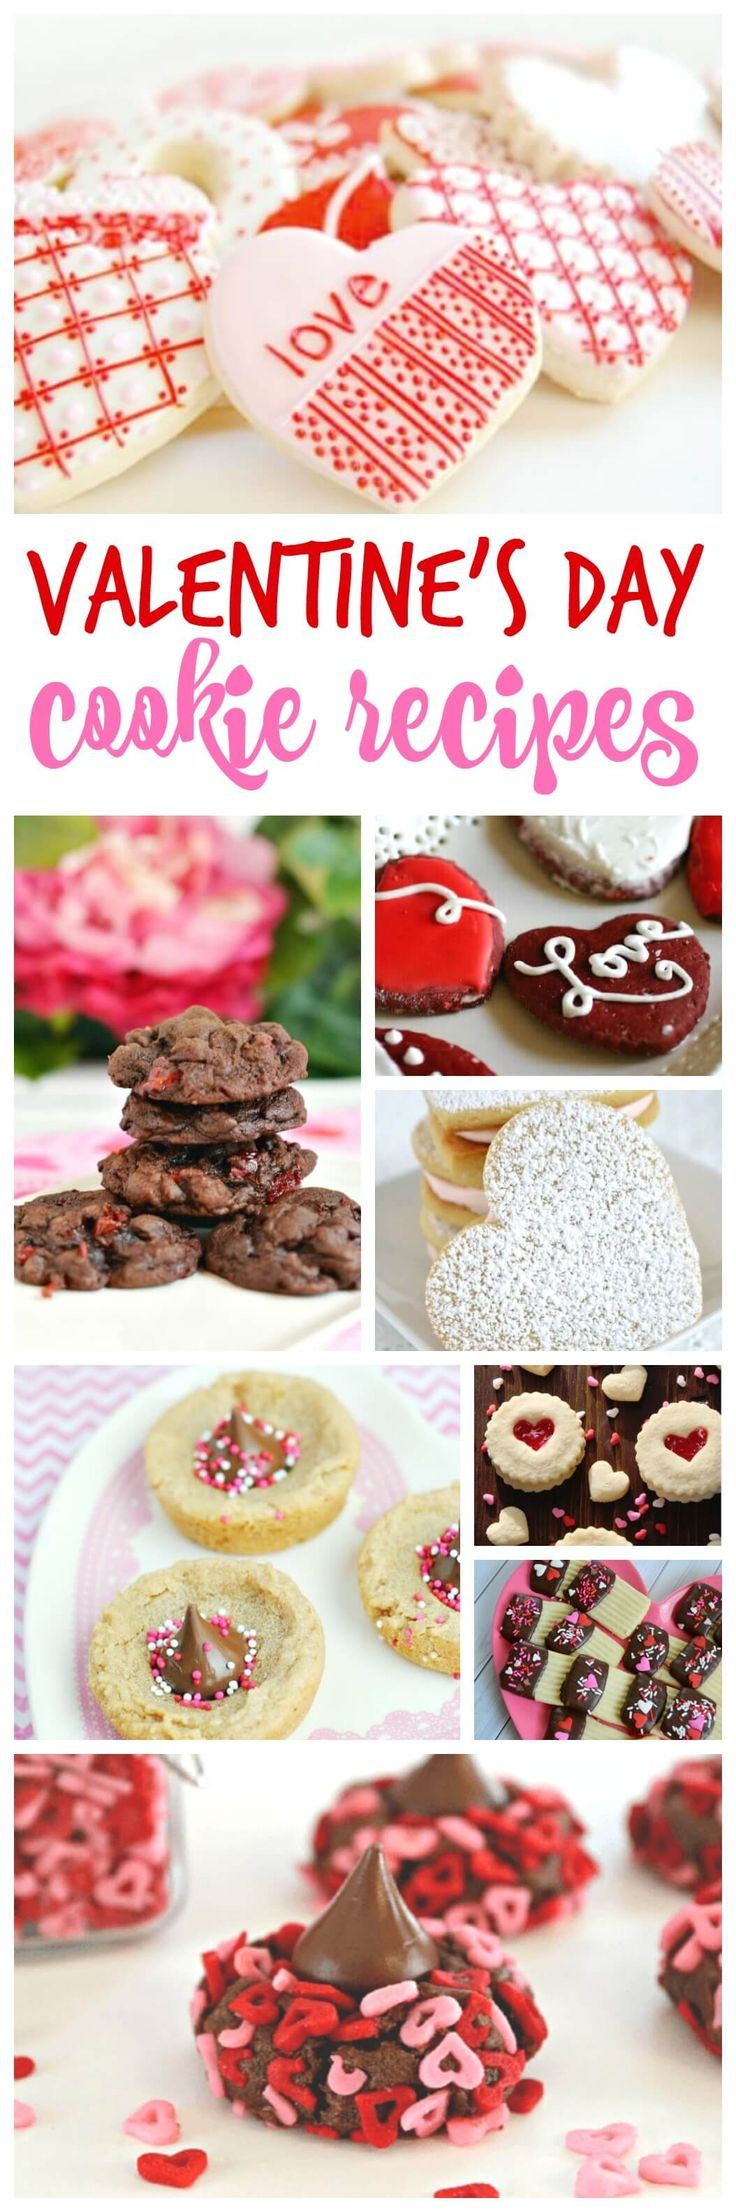 106 best images about valentine 39 s day recipes crafts and for Best valentines day meals